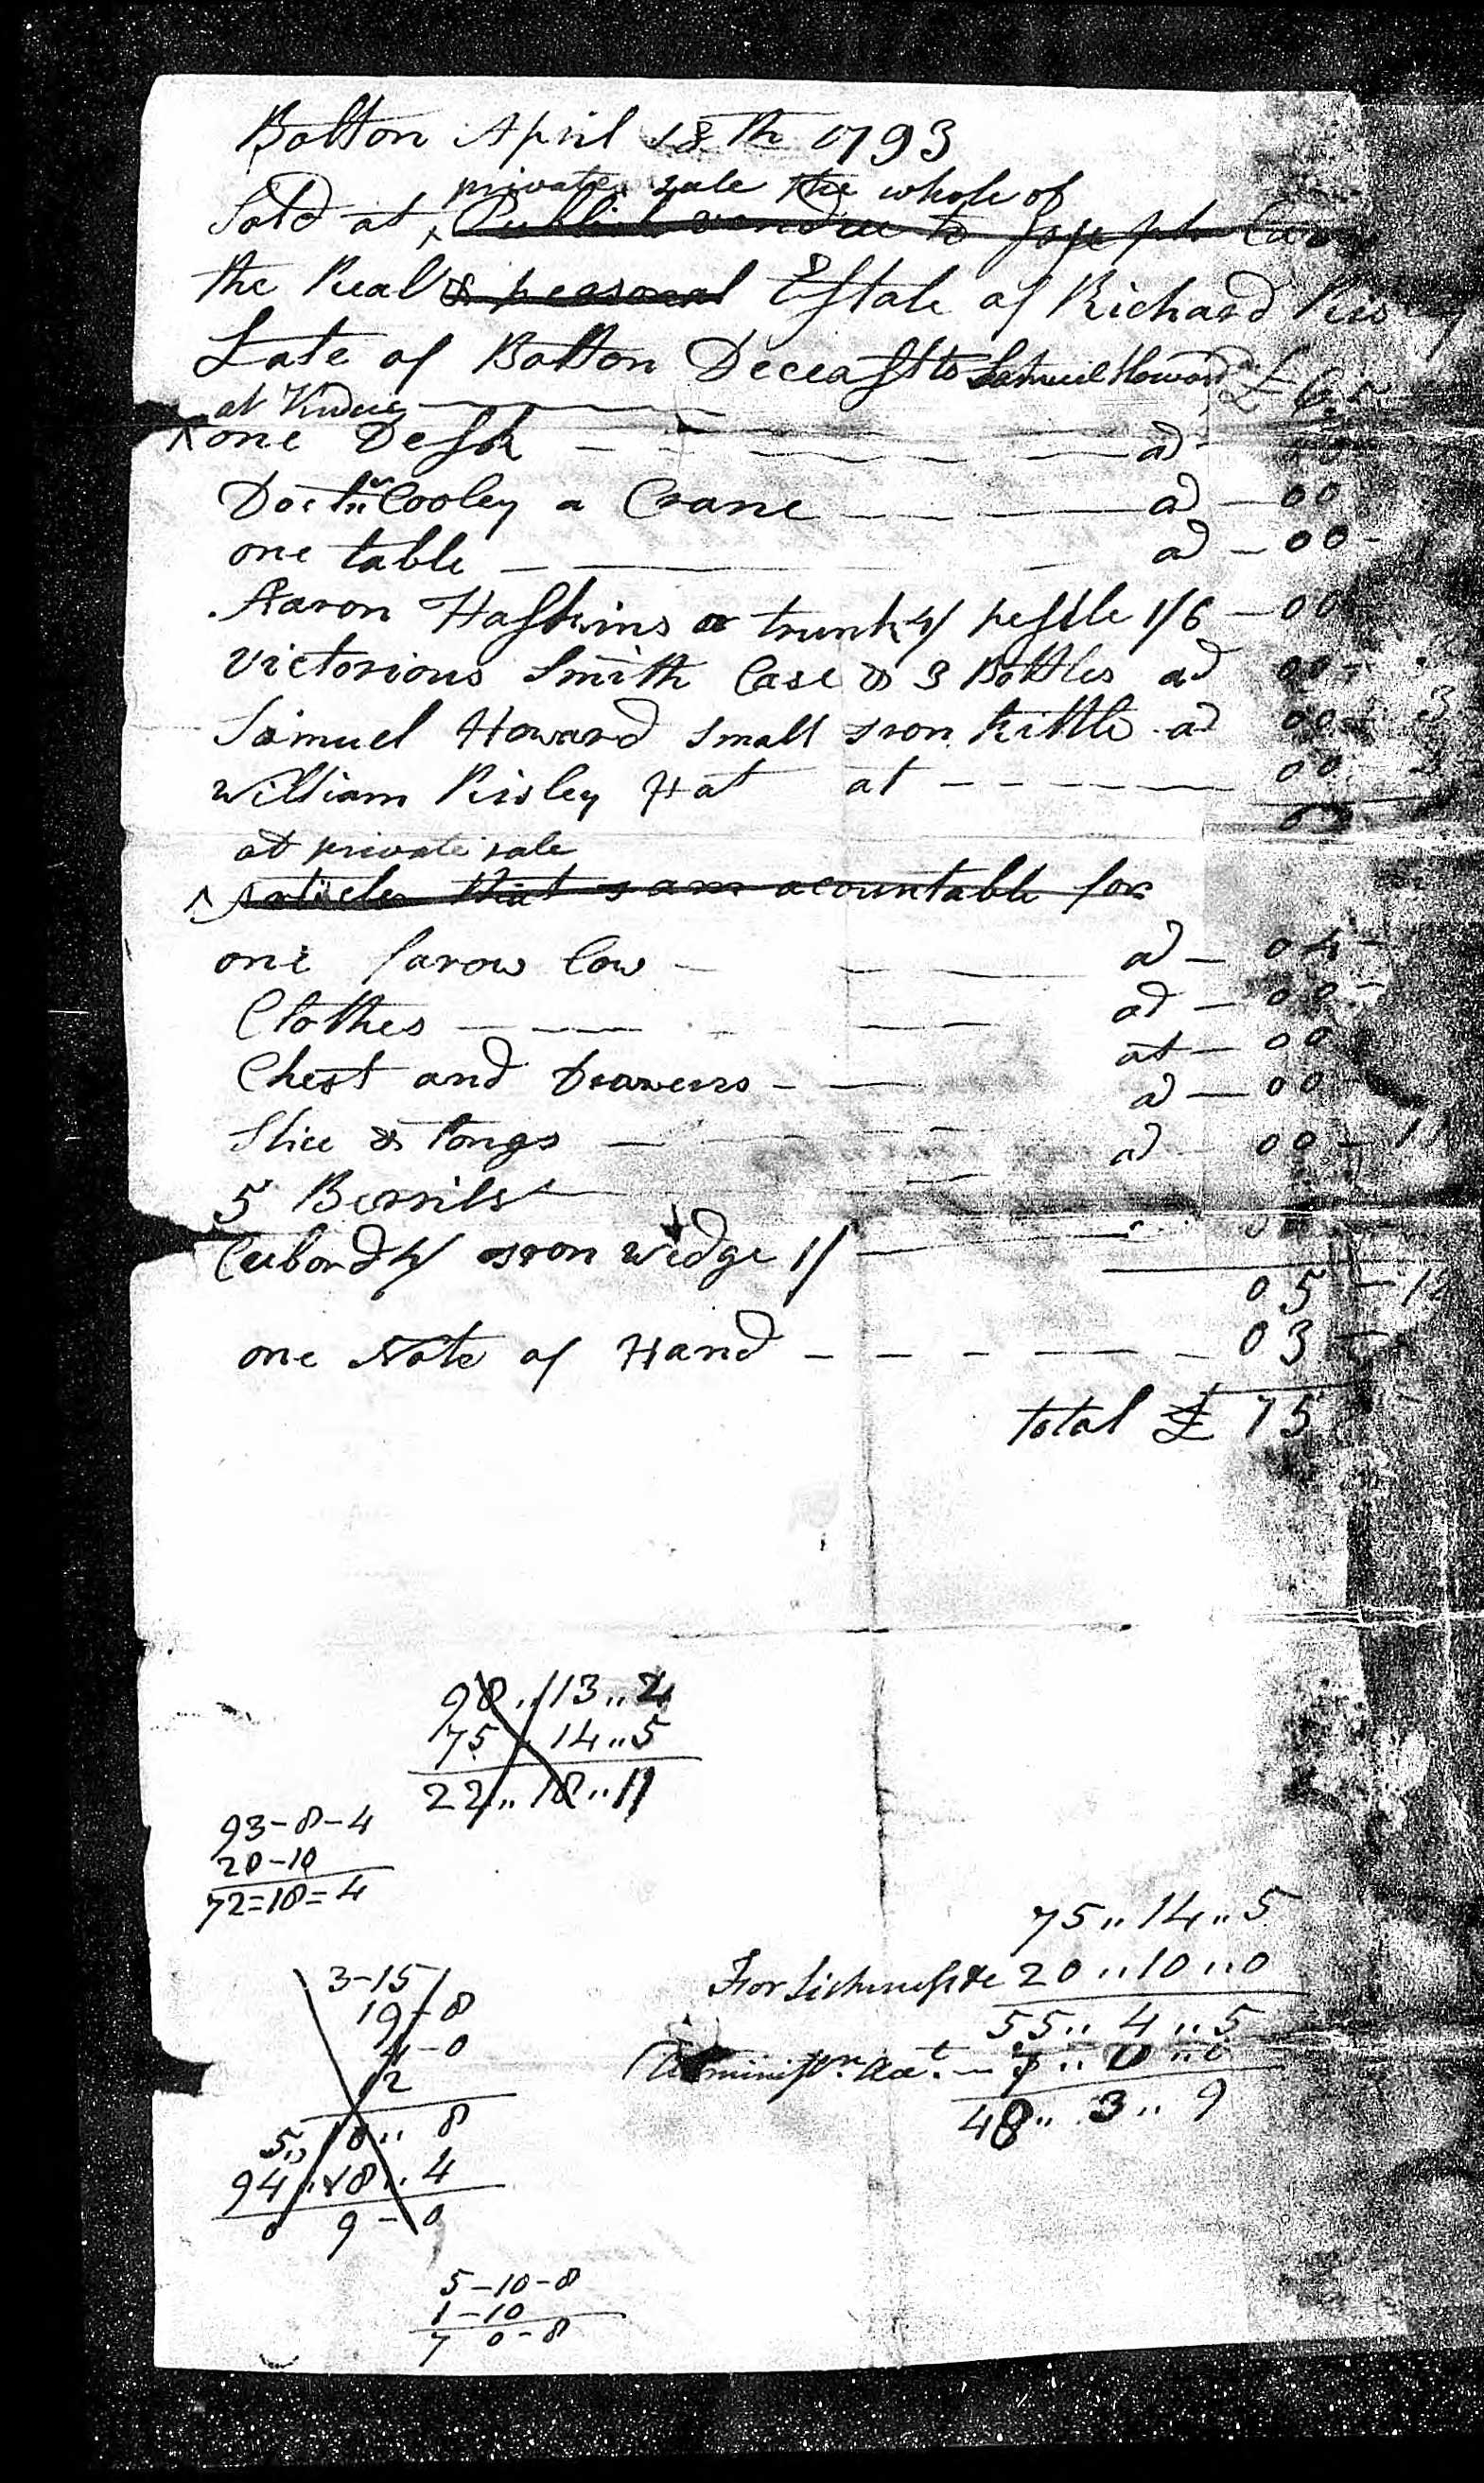 Risley, Richard estate papers page 4